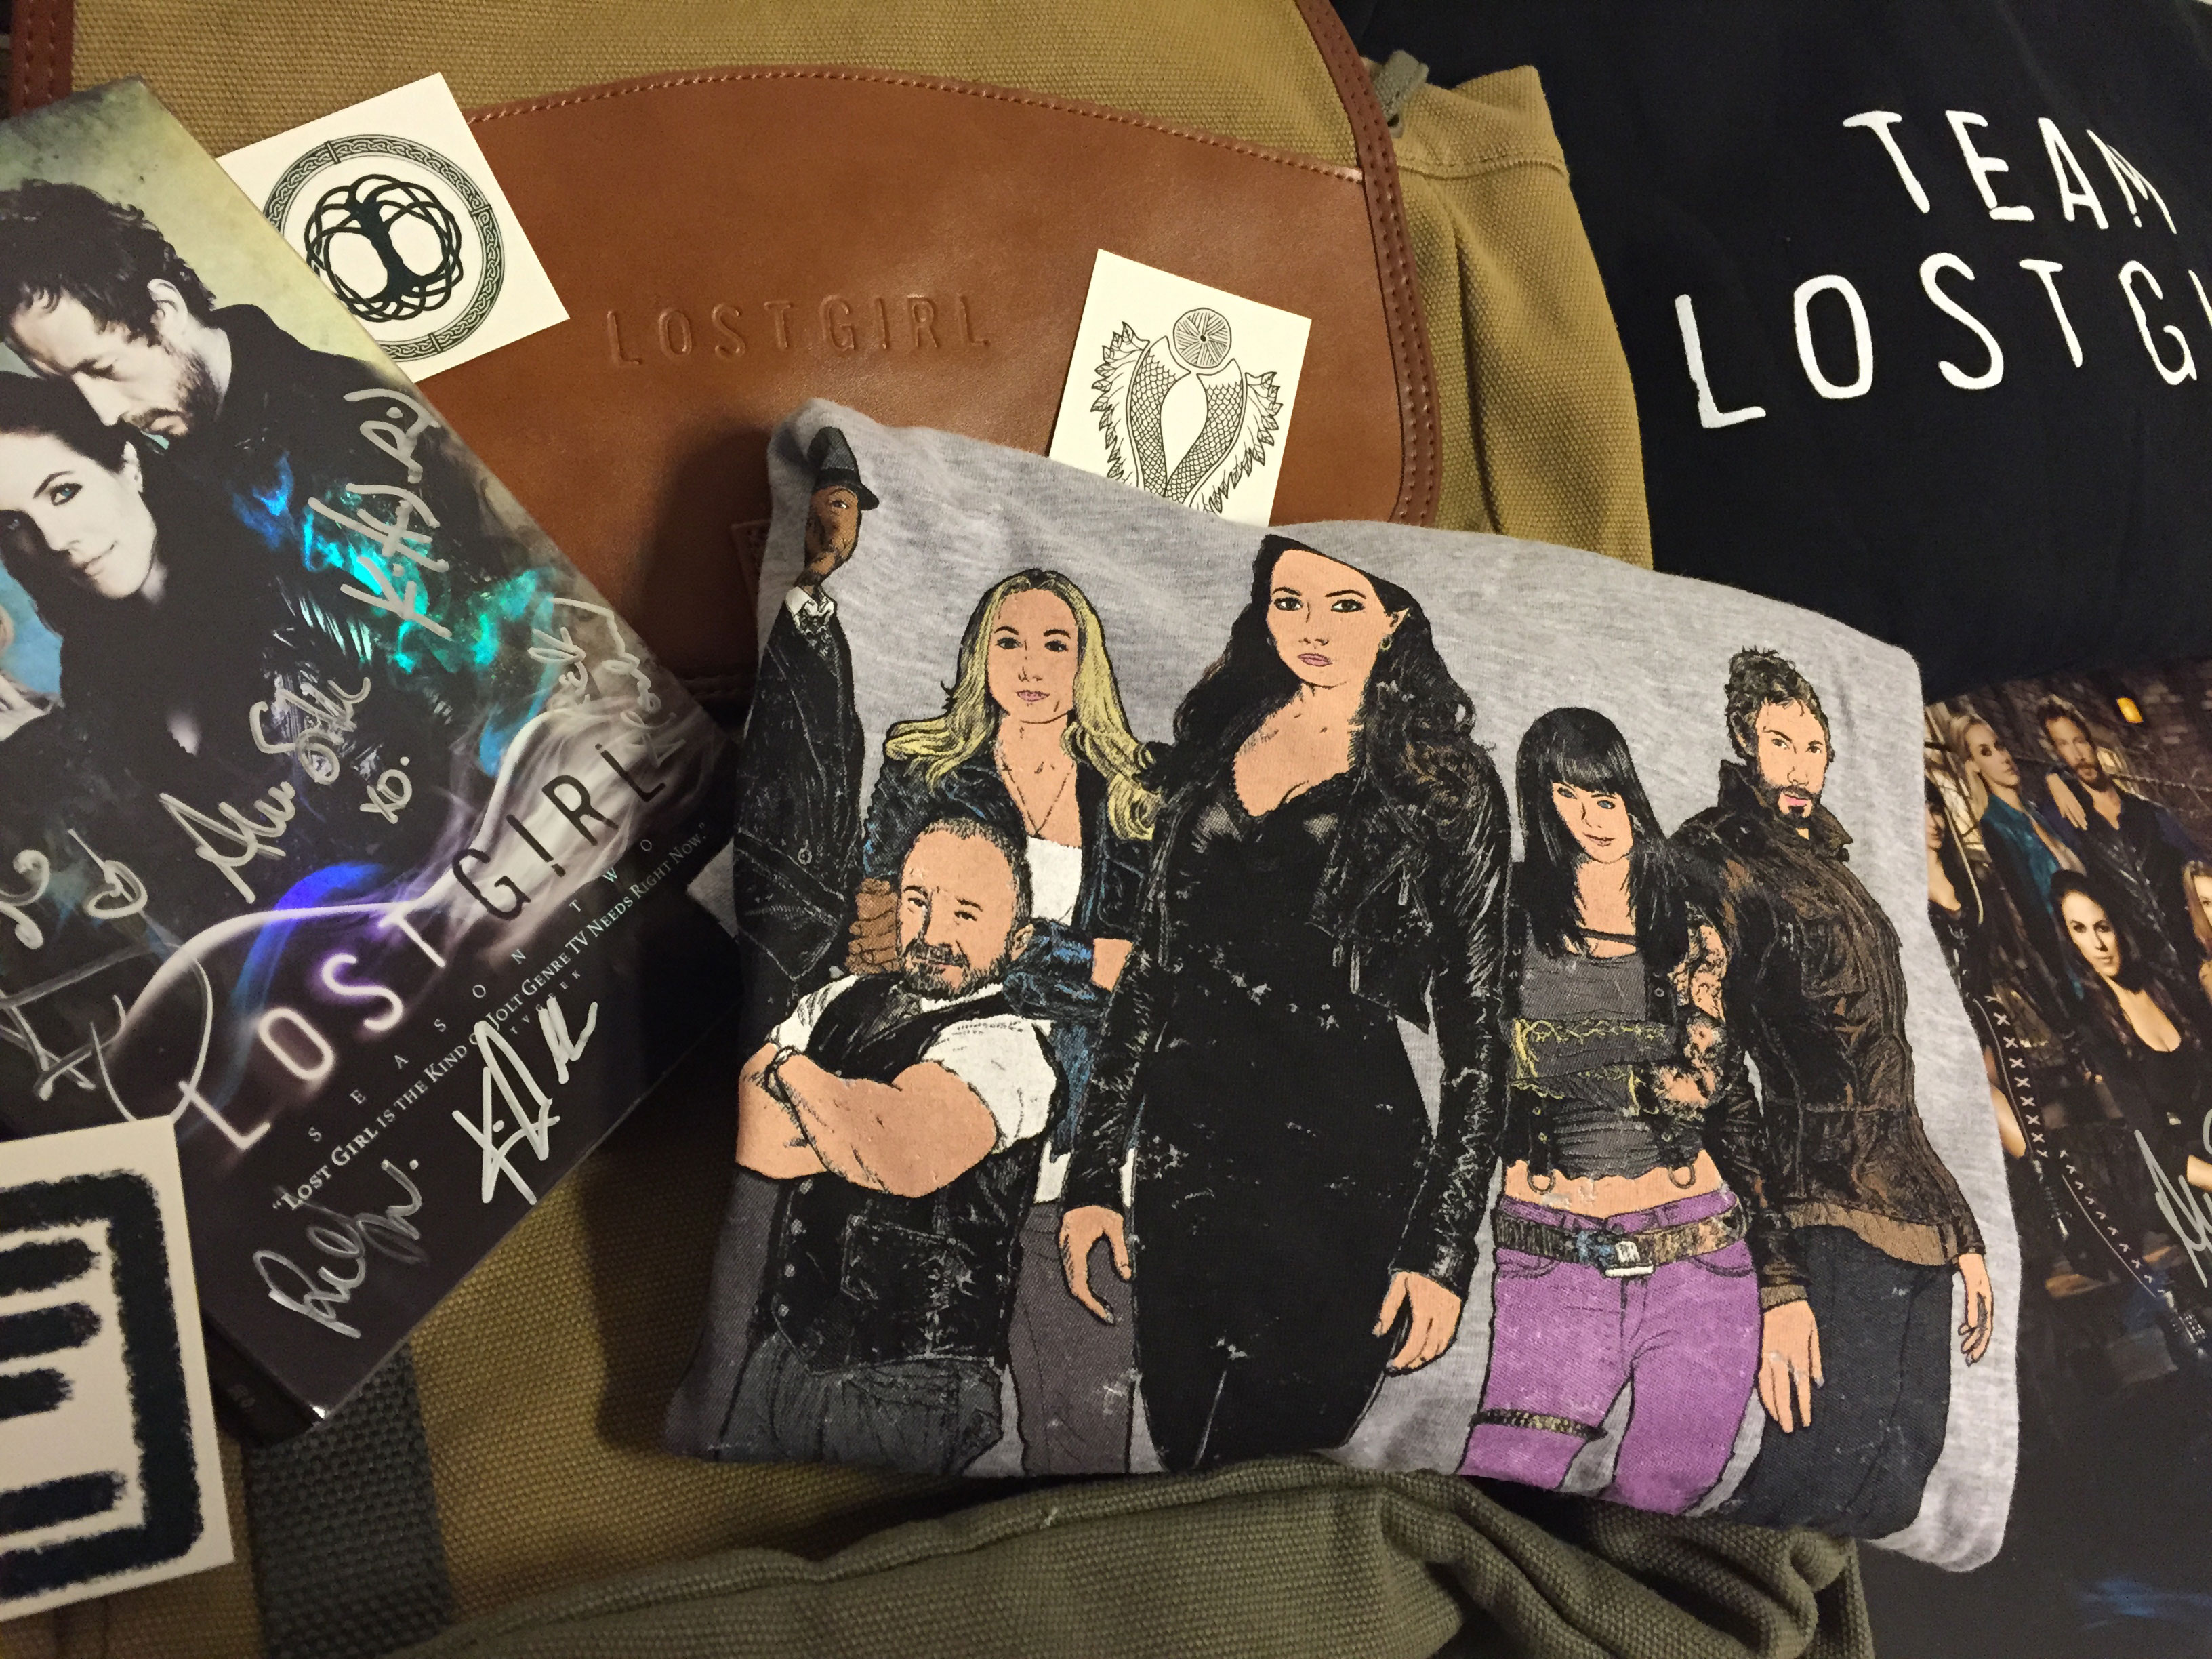 Tell us the #1 reason you love Lost Girl and you could win one amazing Lost Girl prize pack! Visit our Facebook page for your chance to win.